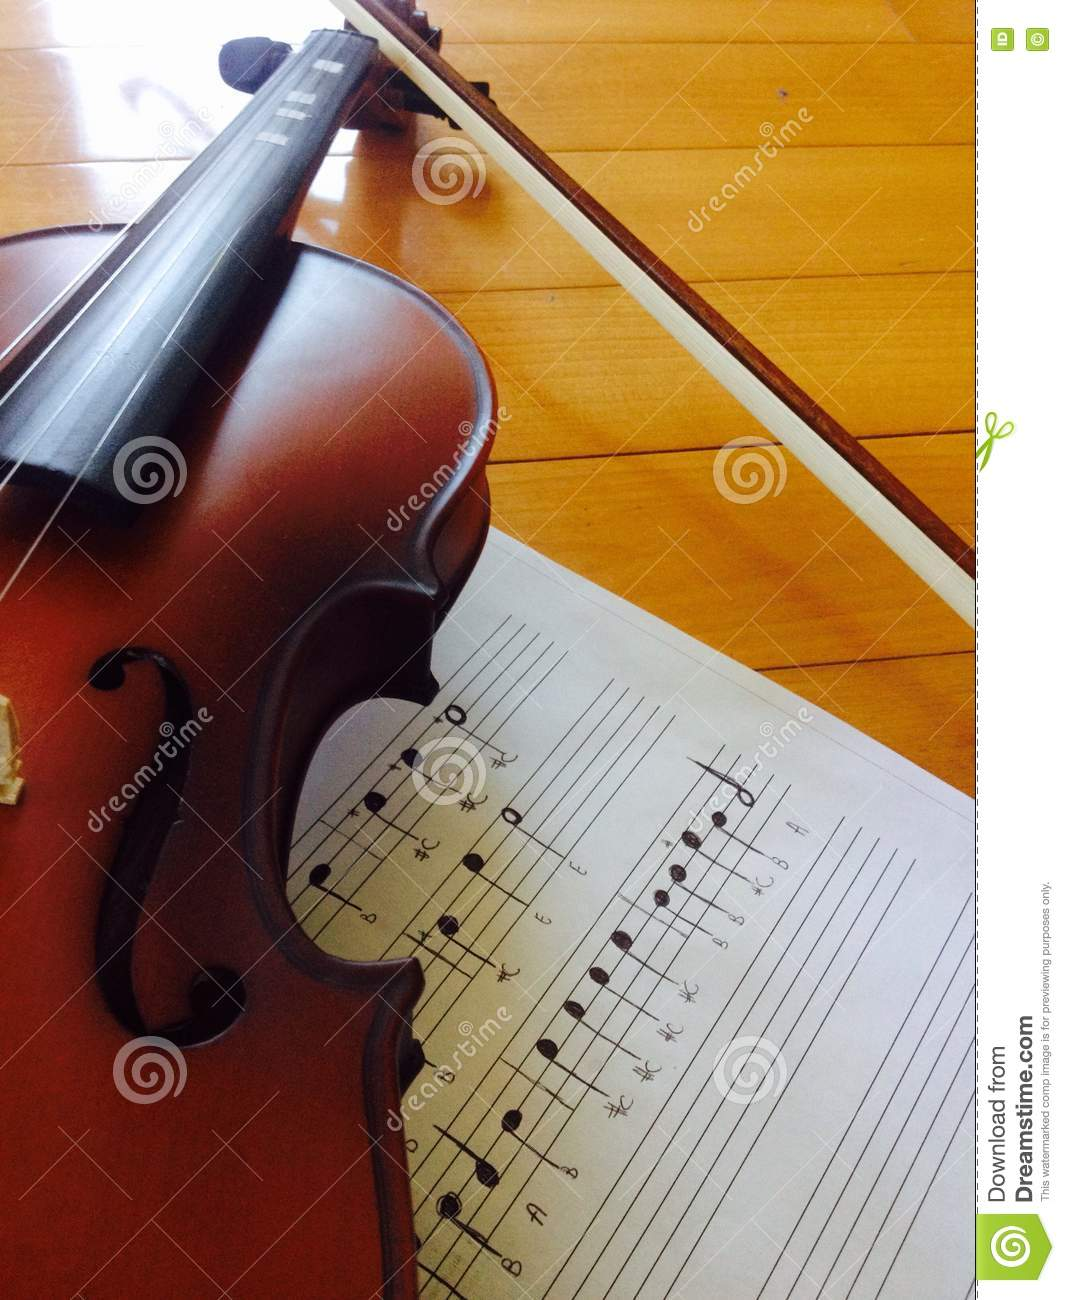 Violin with sheet music